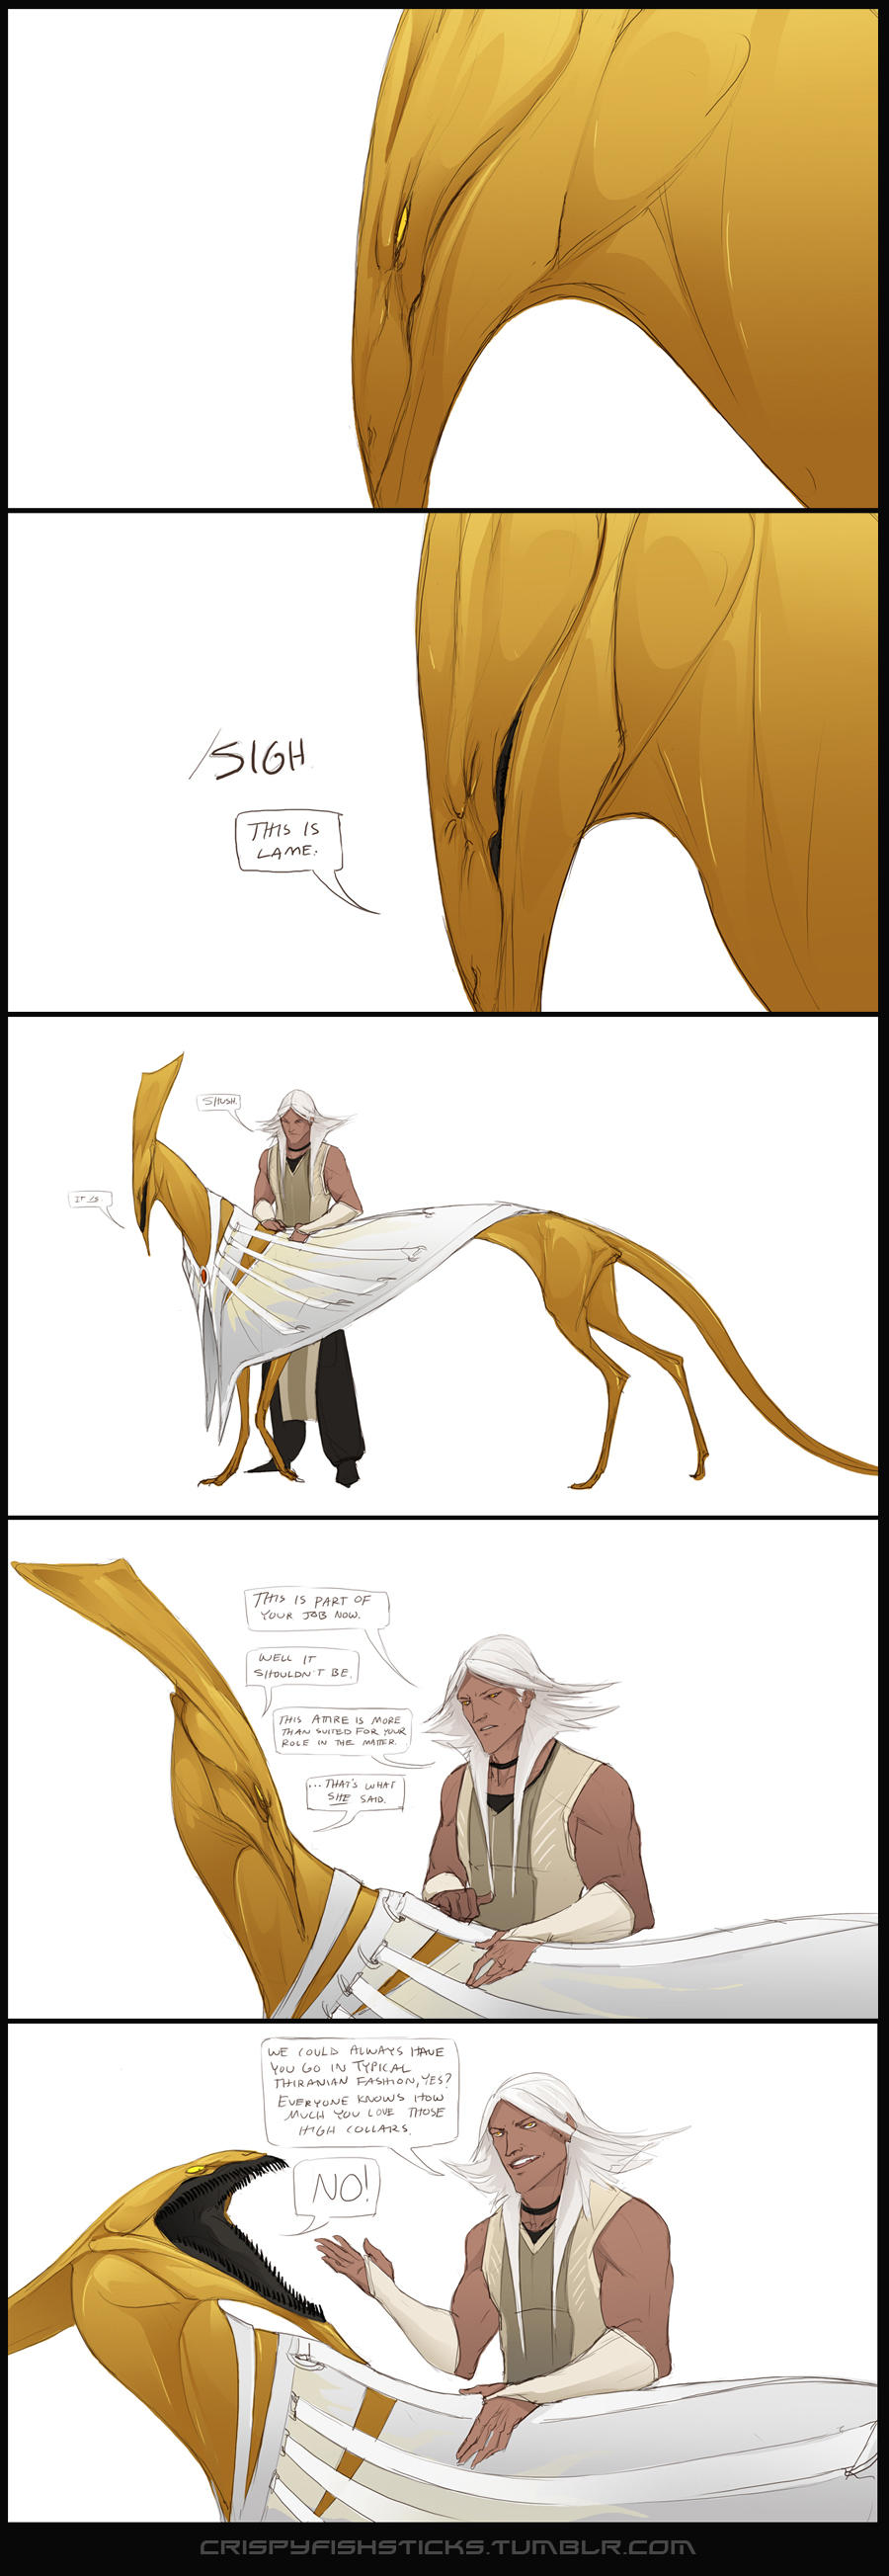 Neckwear is the bane of Jeih's existence by beastofoblivion